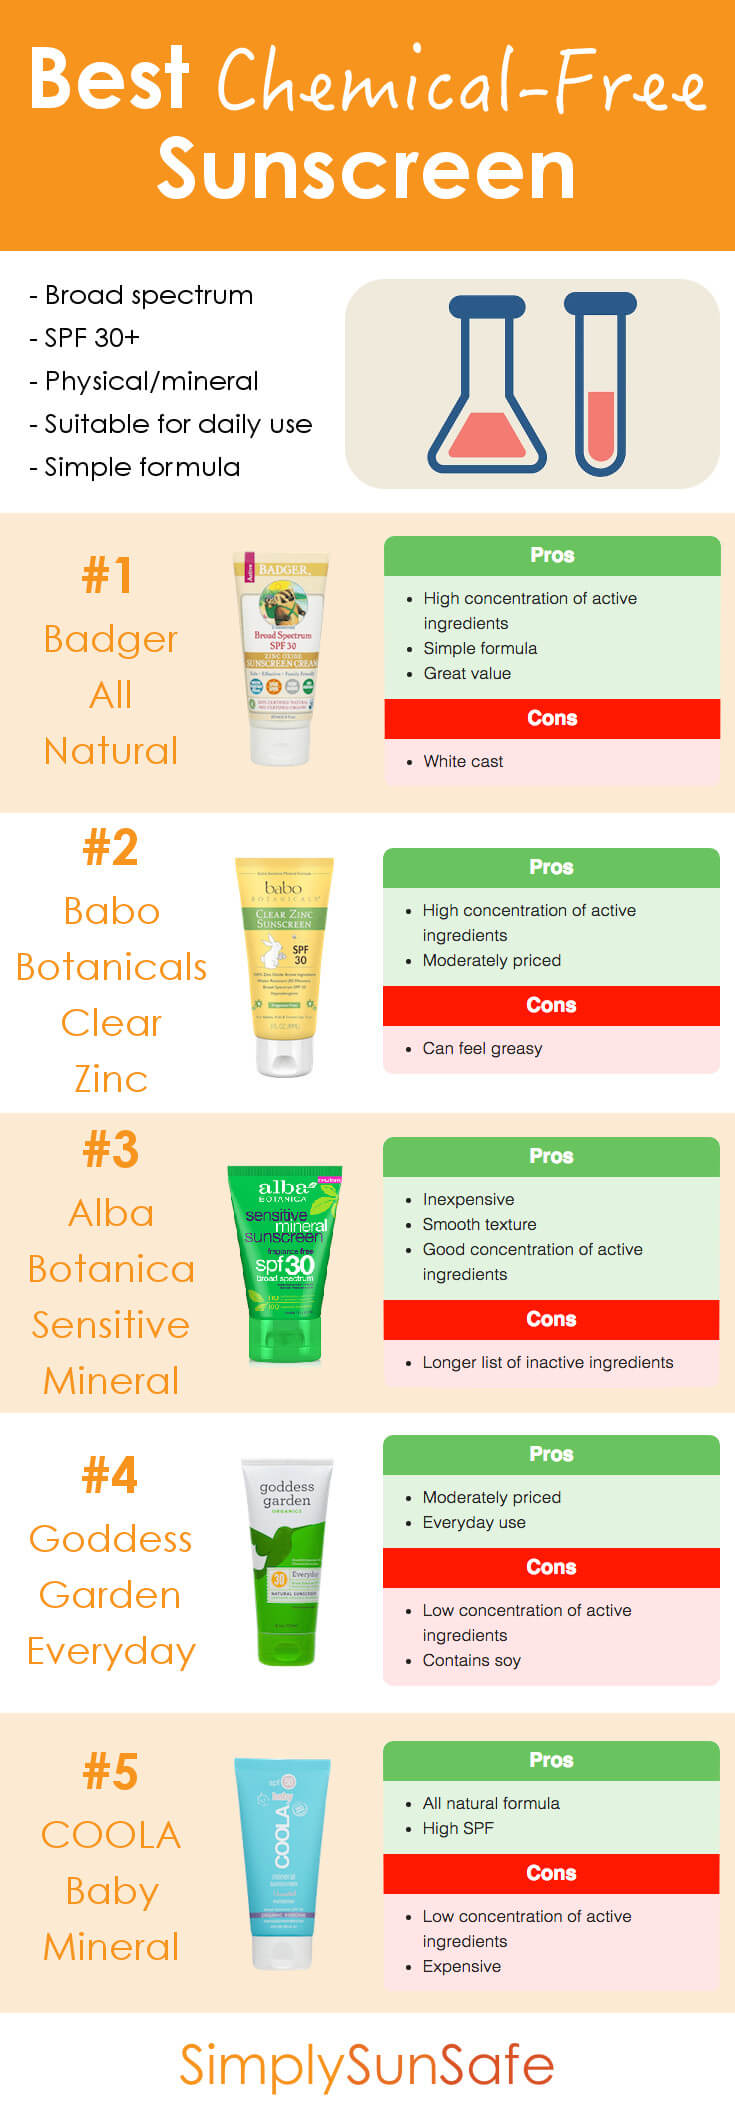 Best Chemical-Free Sunscreen Pinterest